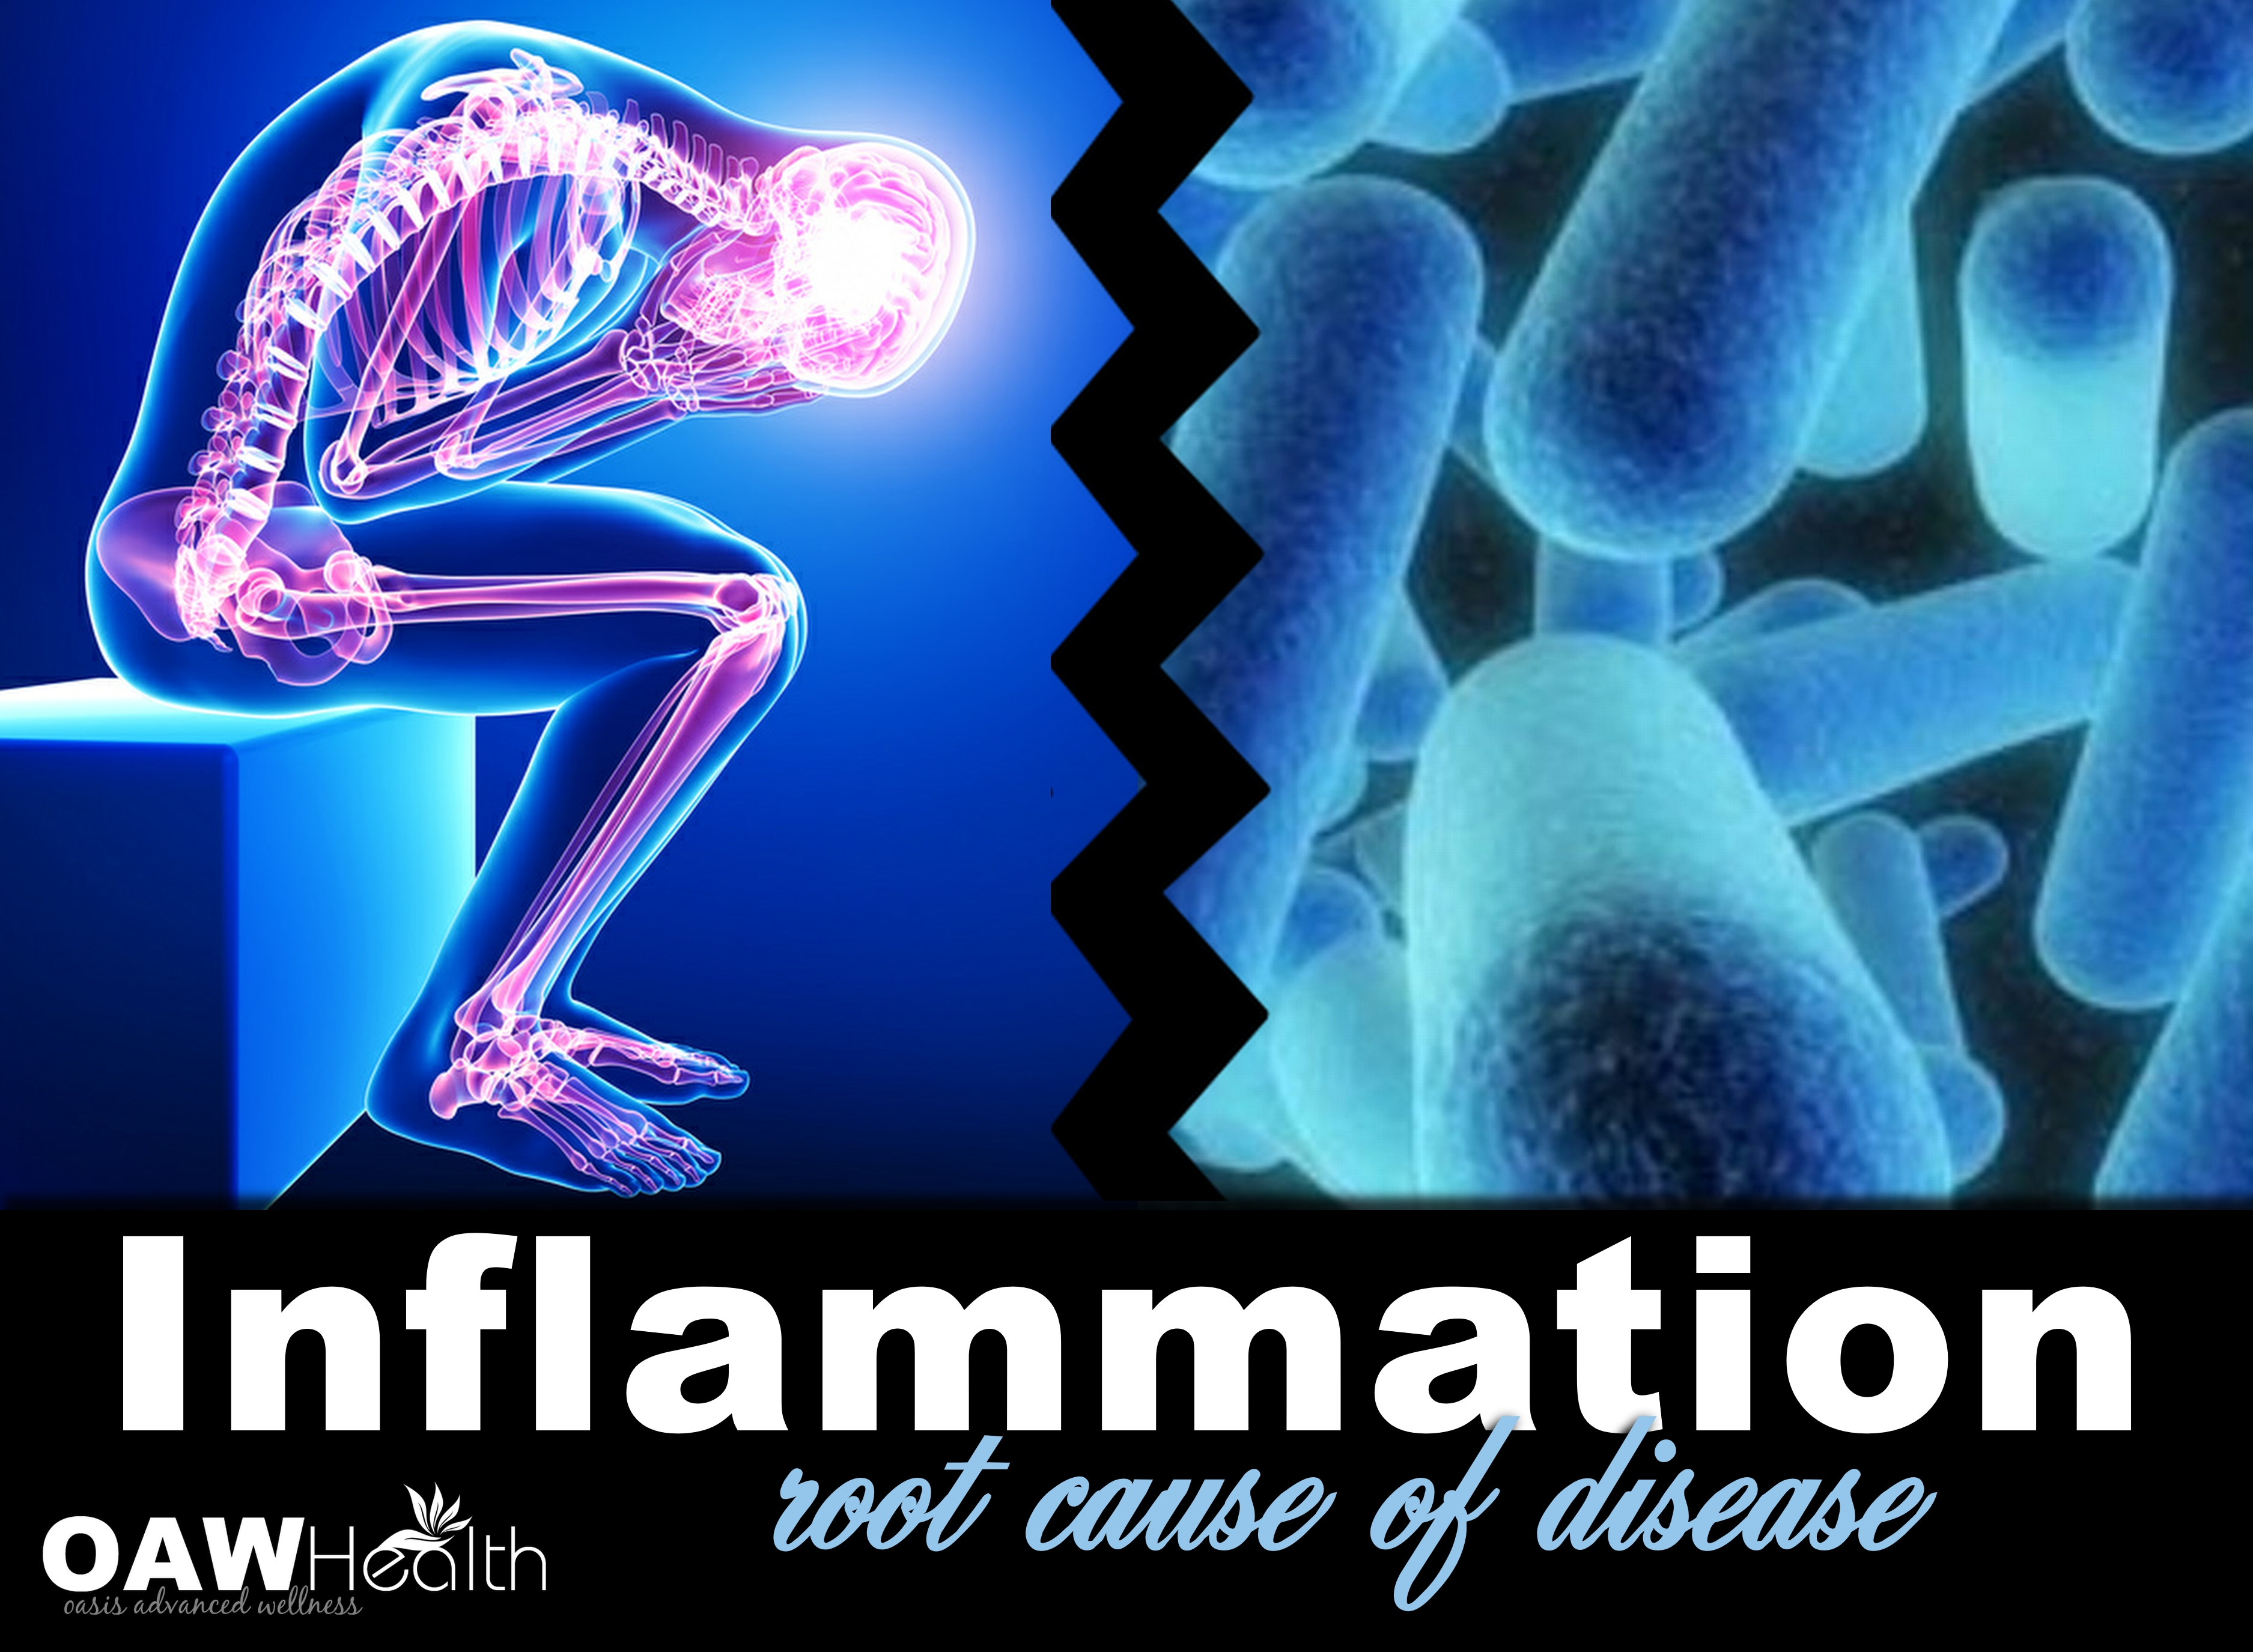 Inflammation – Root Cause of Disease